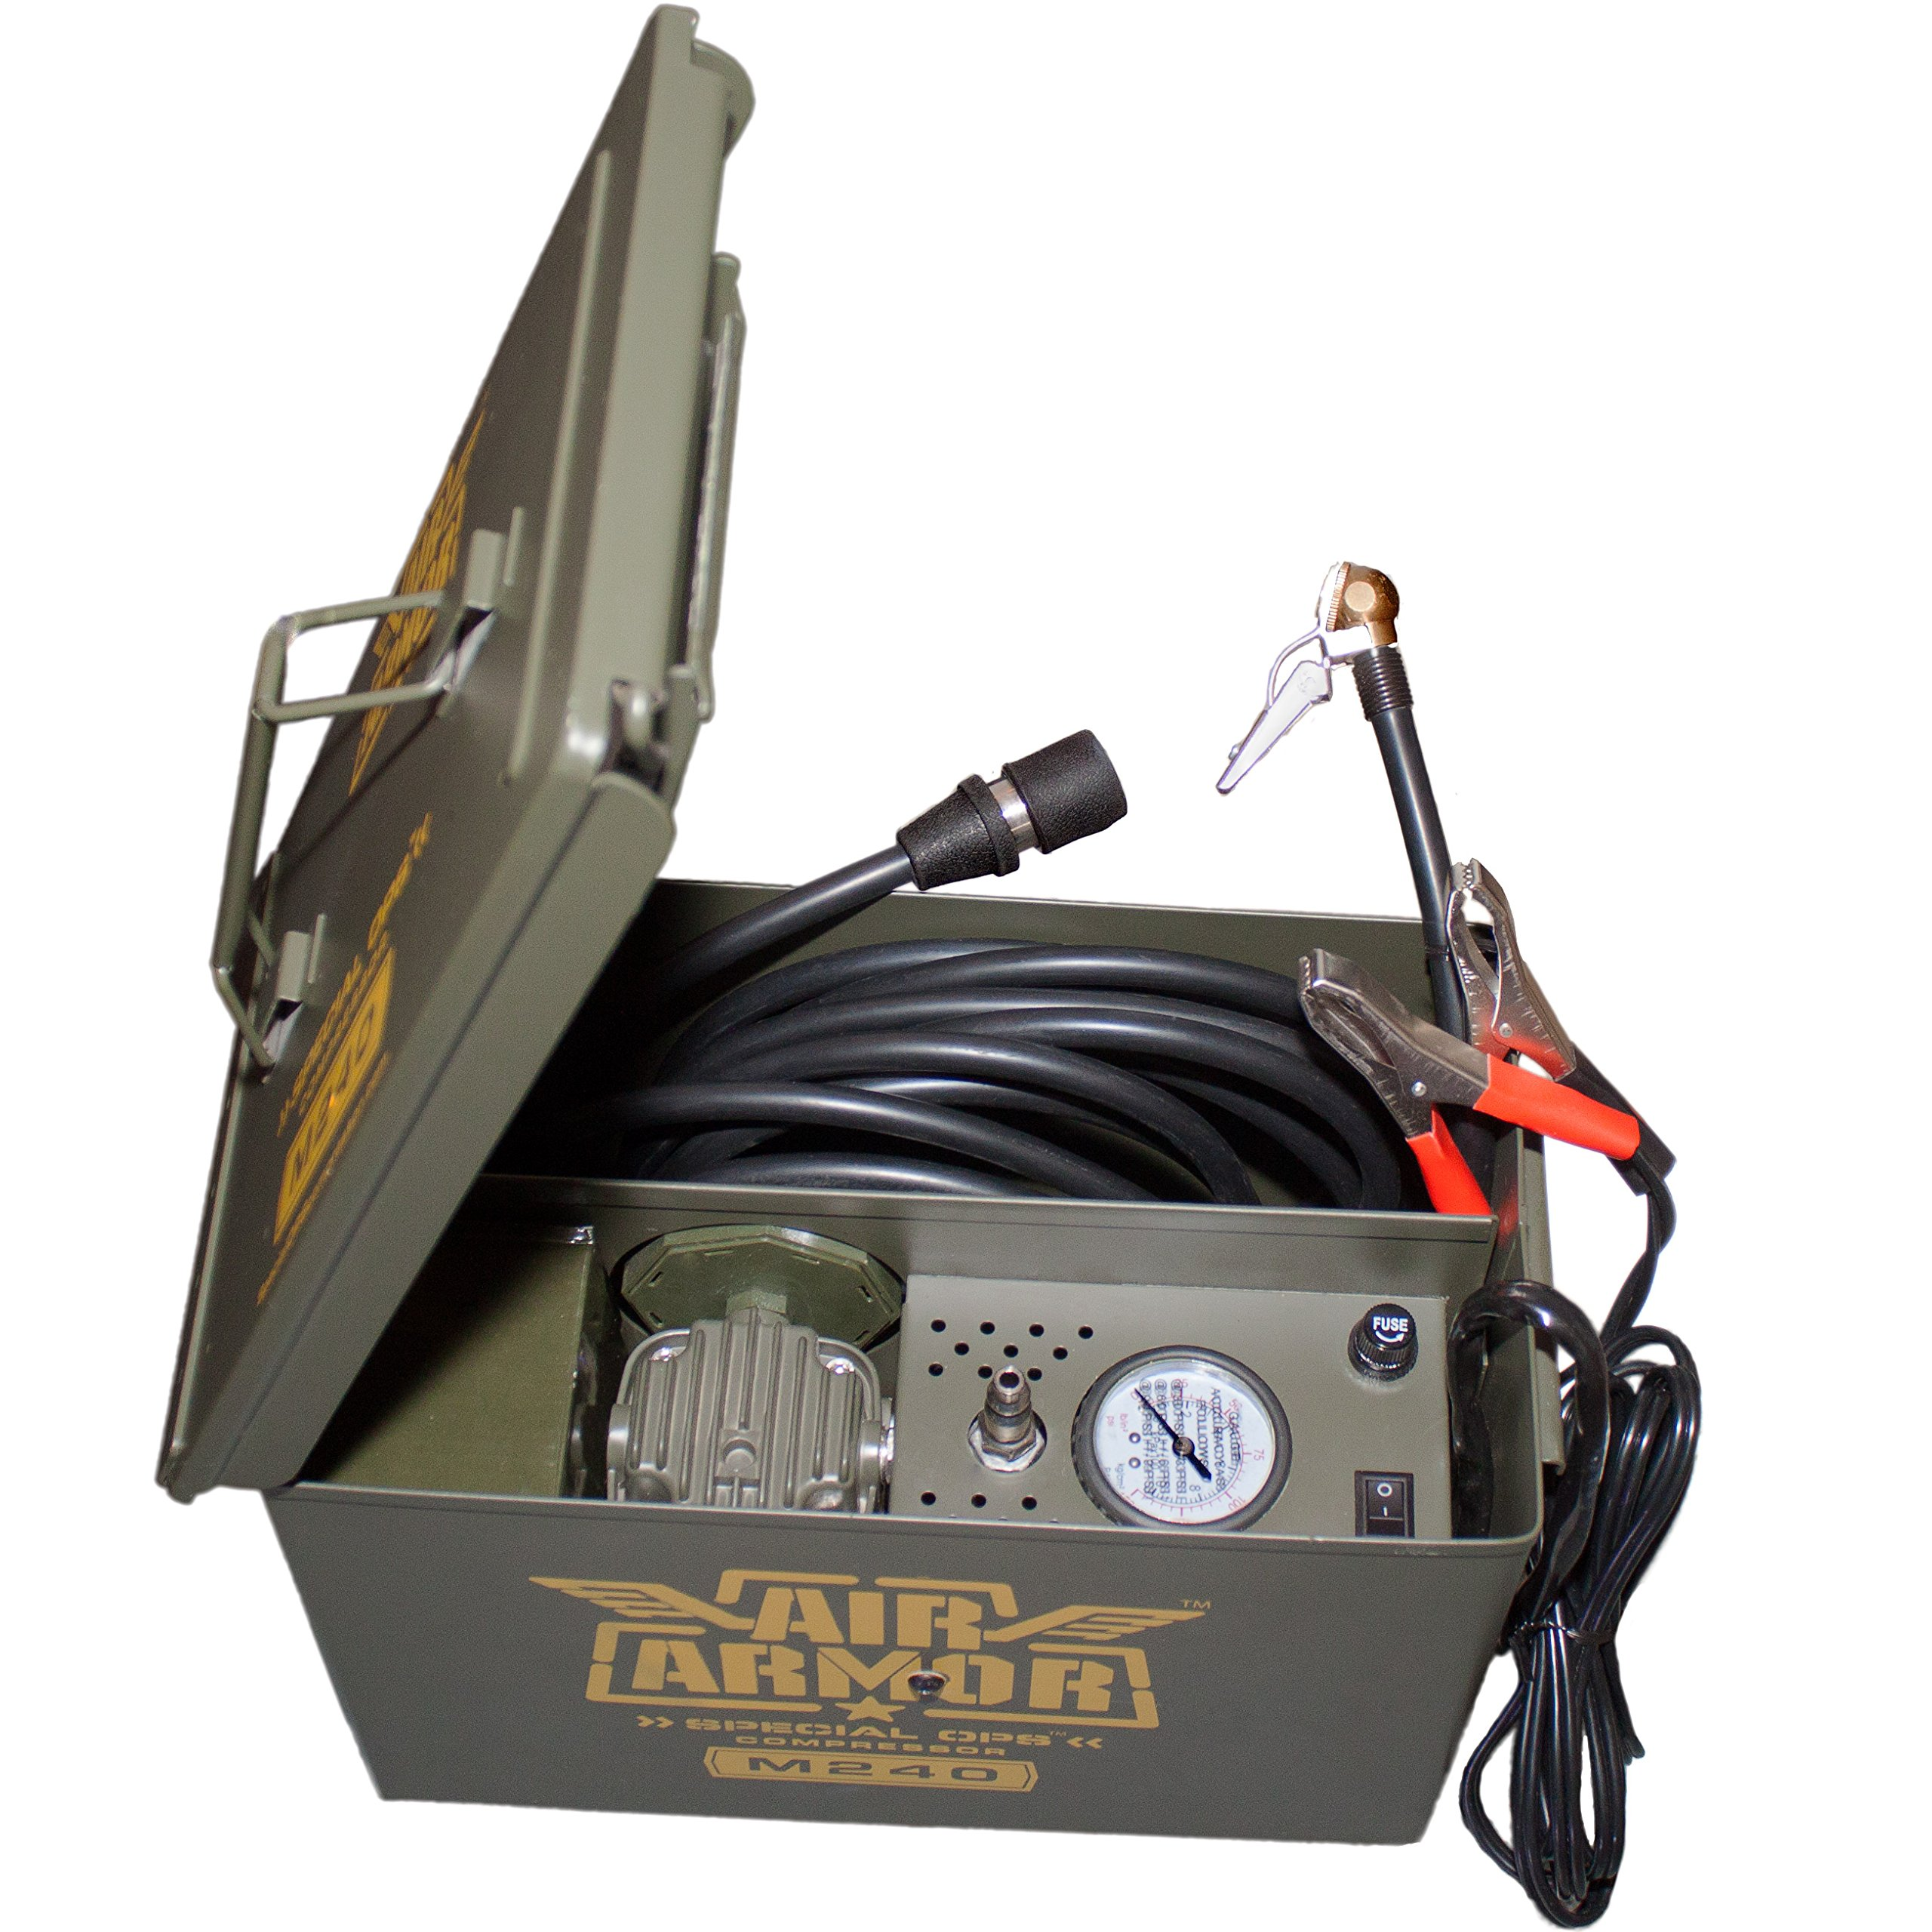 Air Armor M240 Portable 12-Volt Tactical Air Compressor Kit Tire Inflator by Air Armor (Image #1)